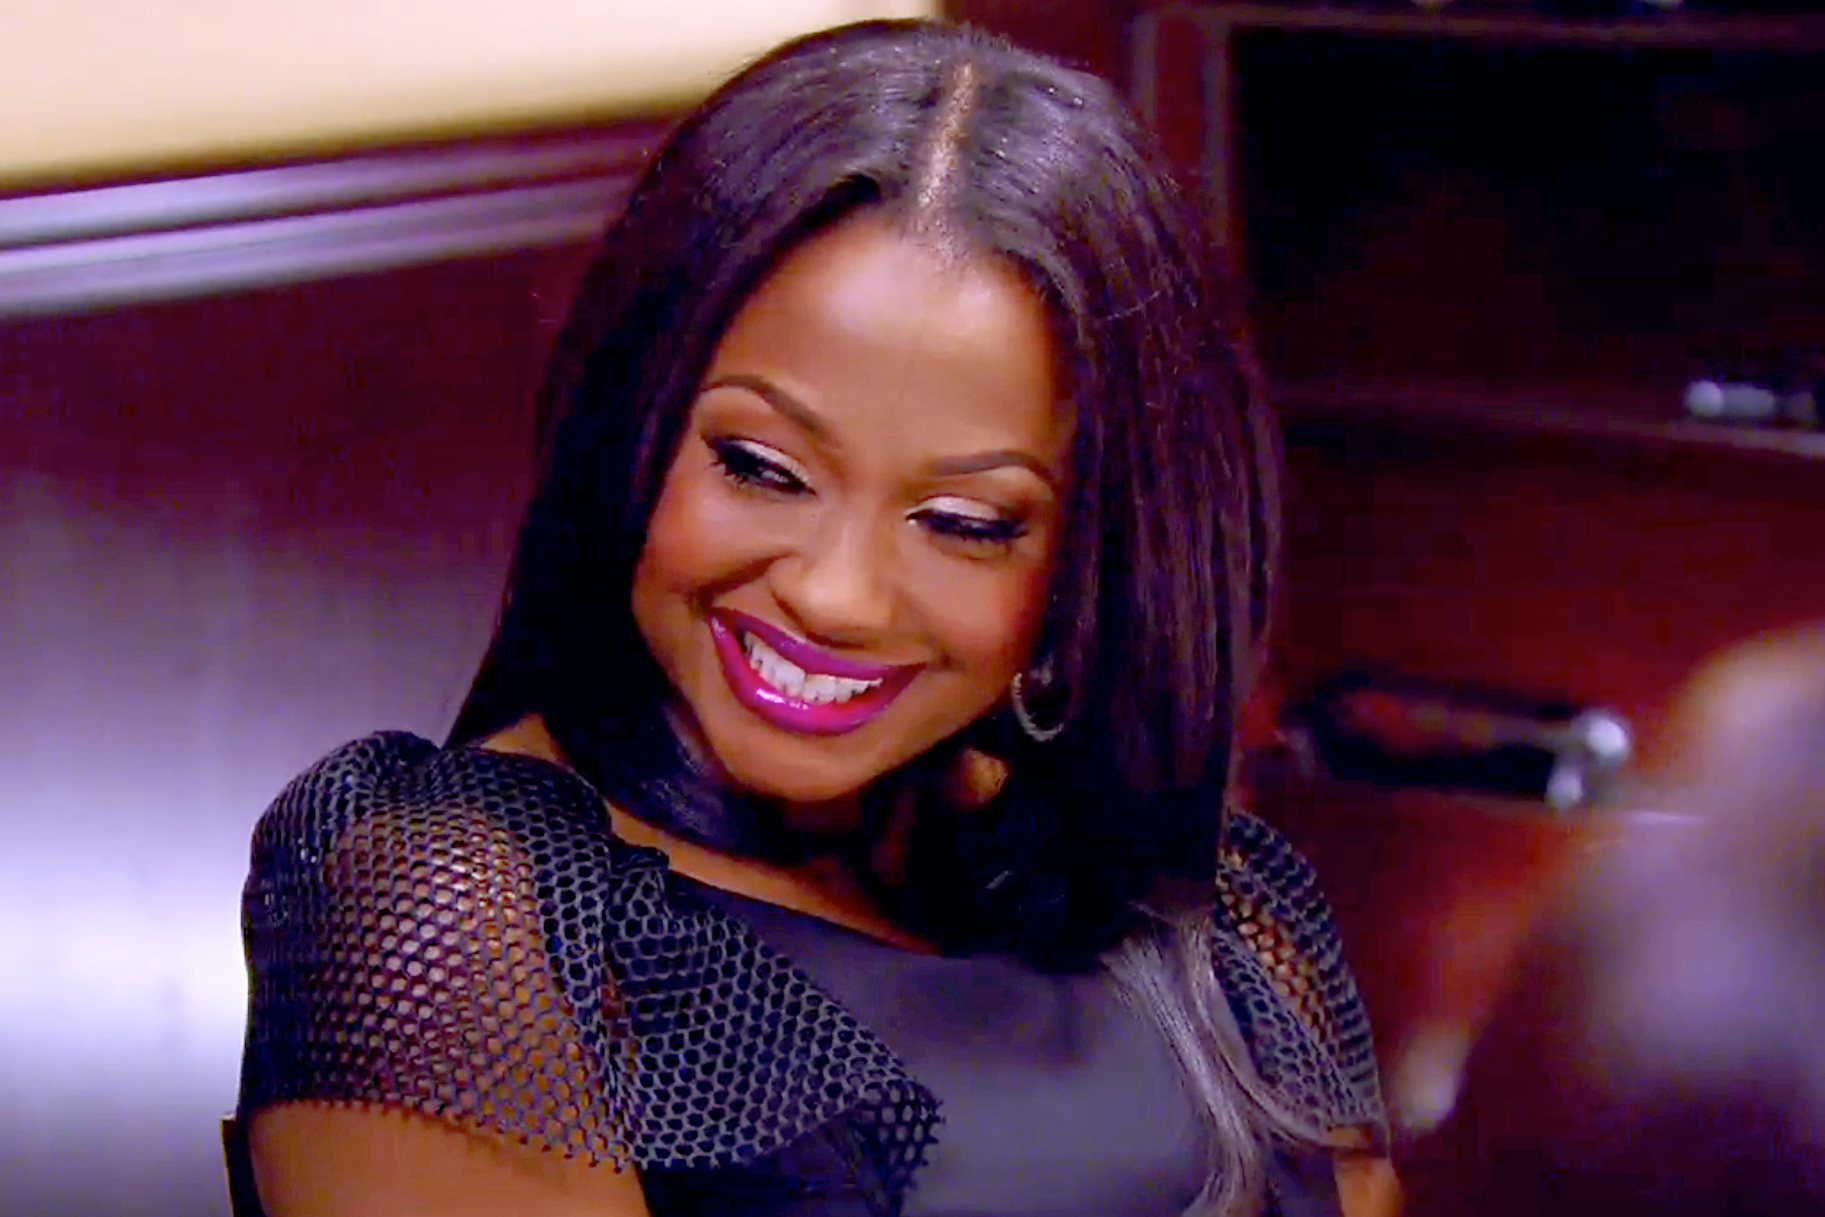 """""""phaedra-parks-couldnt-look-happier-with-her-beau-for-st-patricks-day-and-fans-tell-her-to-get-her-own-show-because-rhoa-is-too-messy"""""""